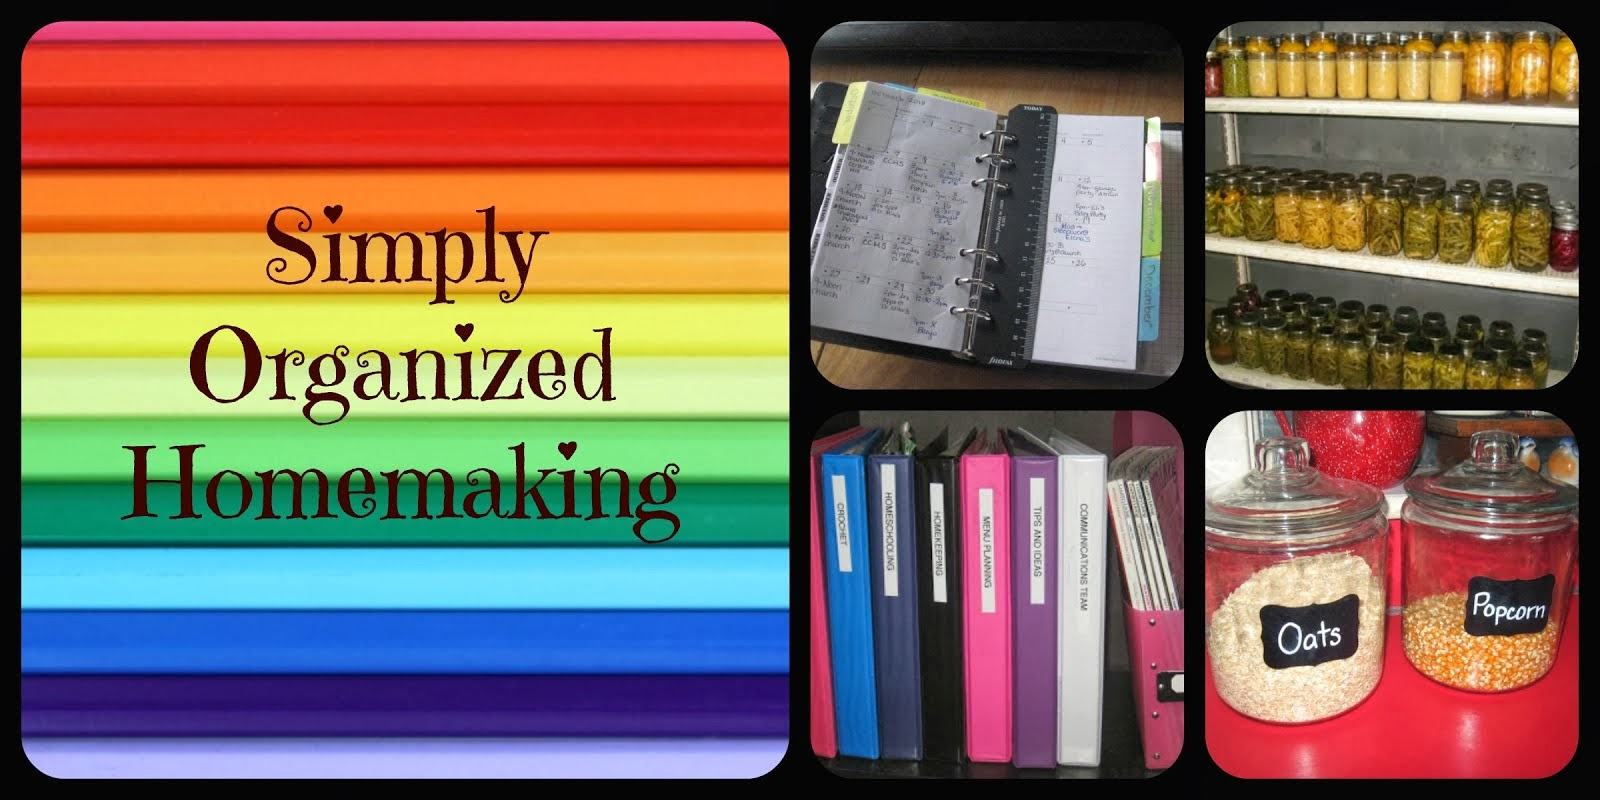 Simply Organized Homemaking